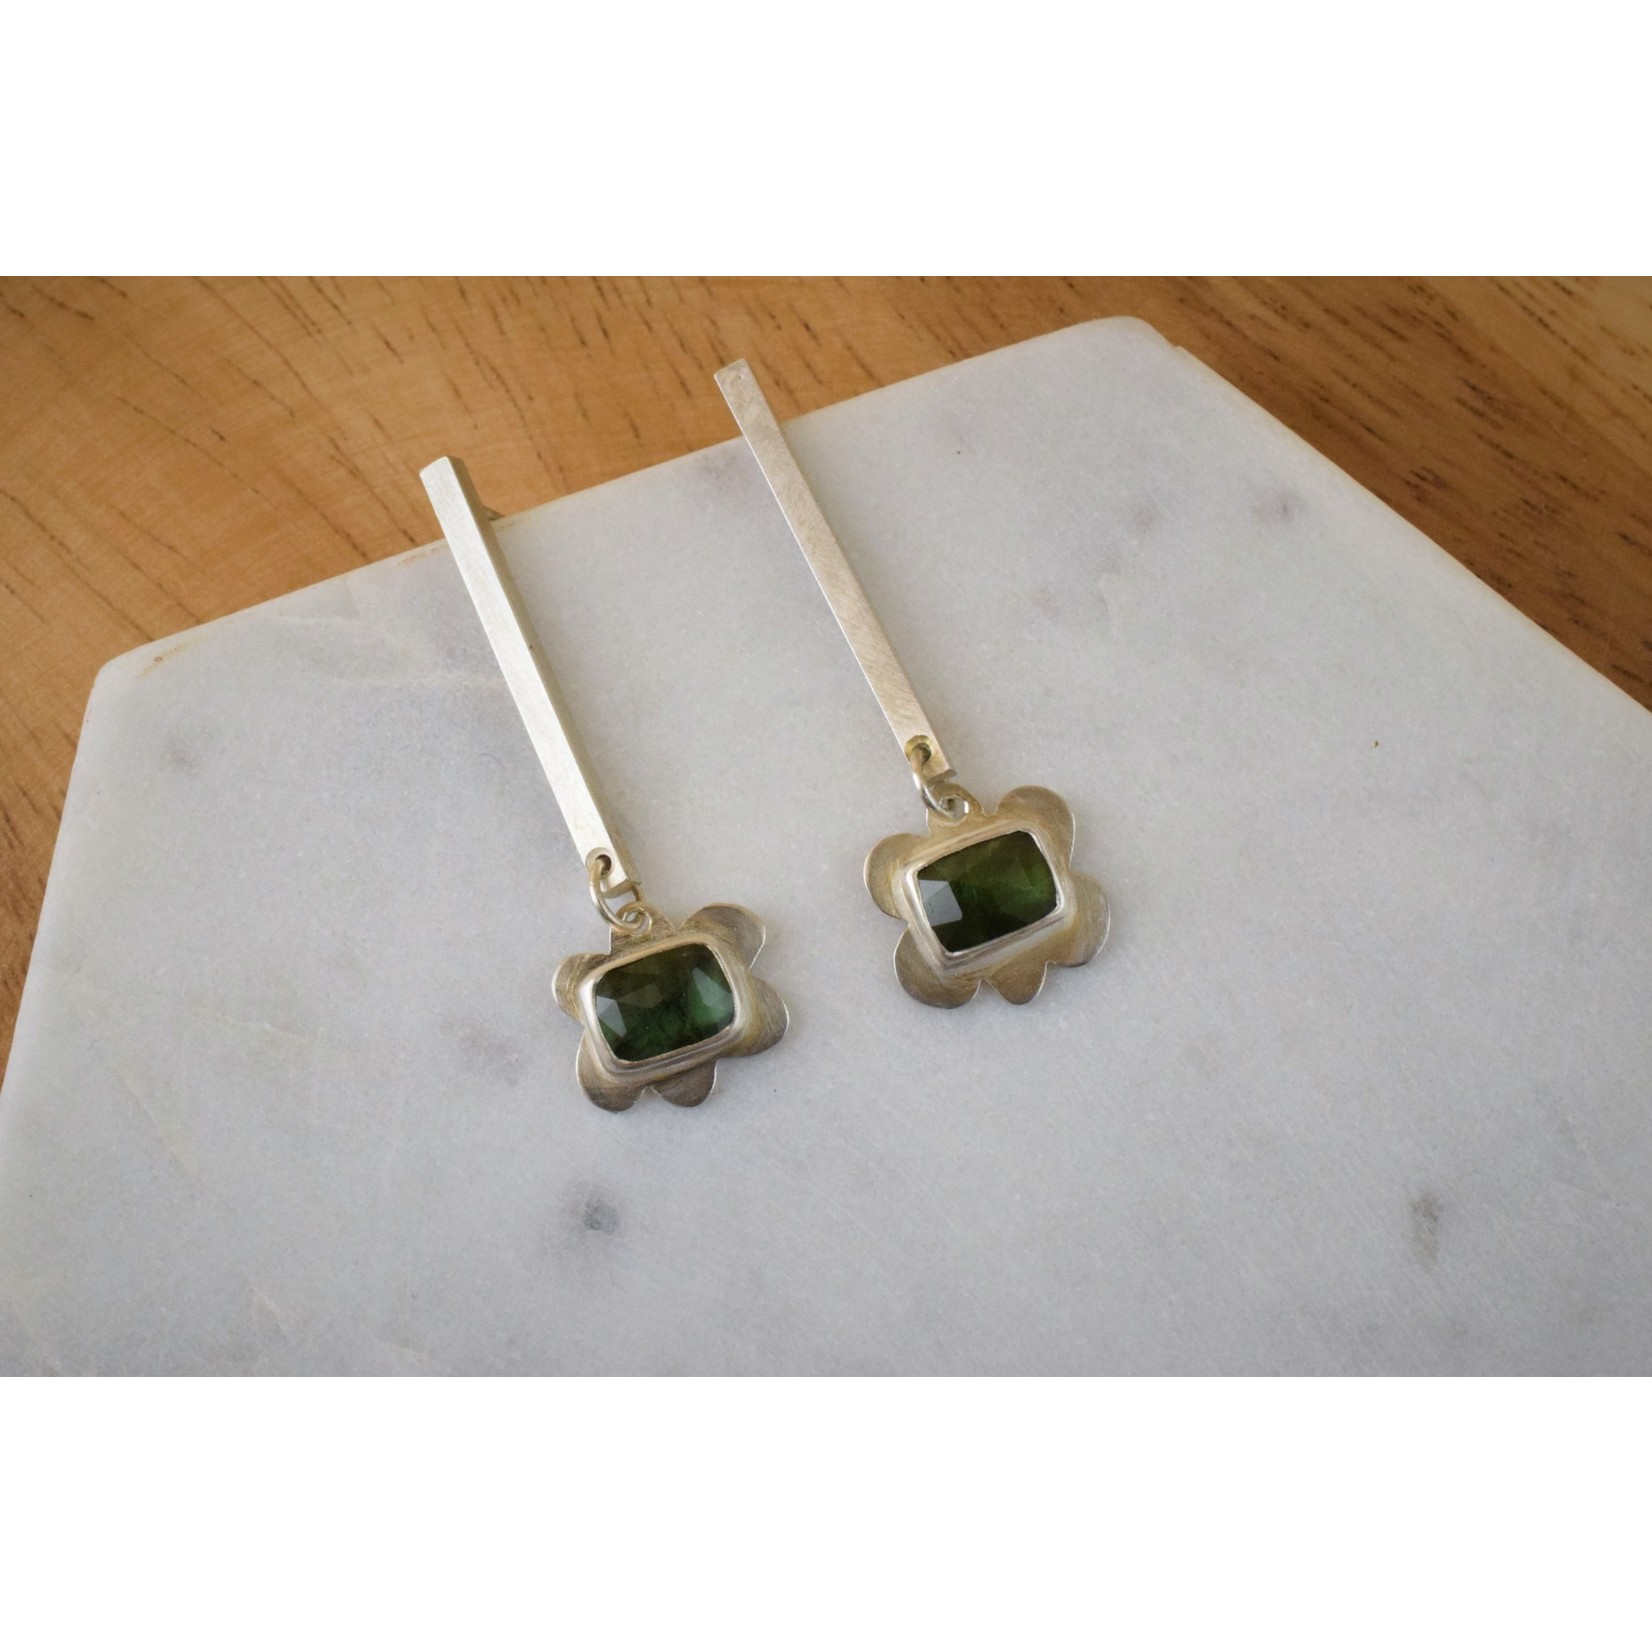 Hartley Studio Sterling Silver and Green Tourmaline Flower Earring